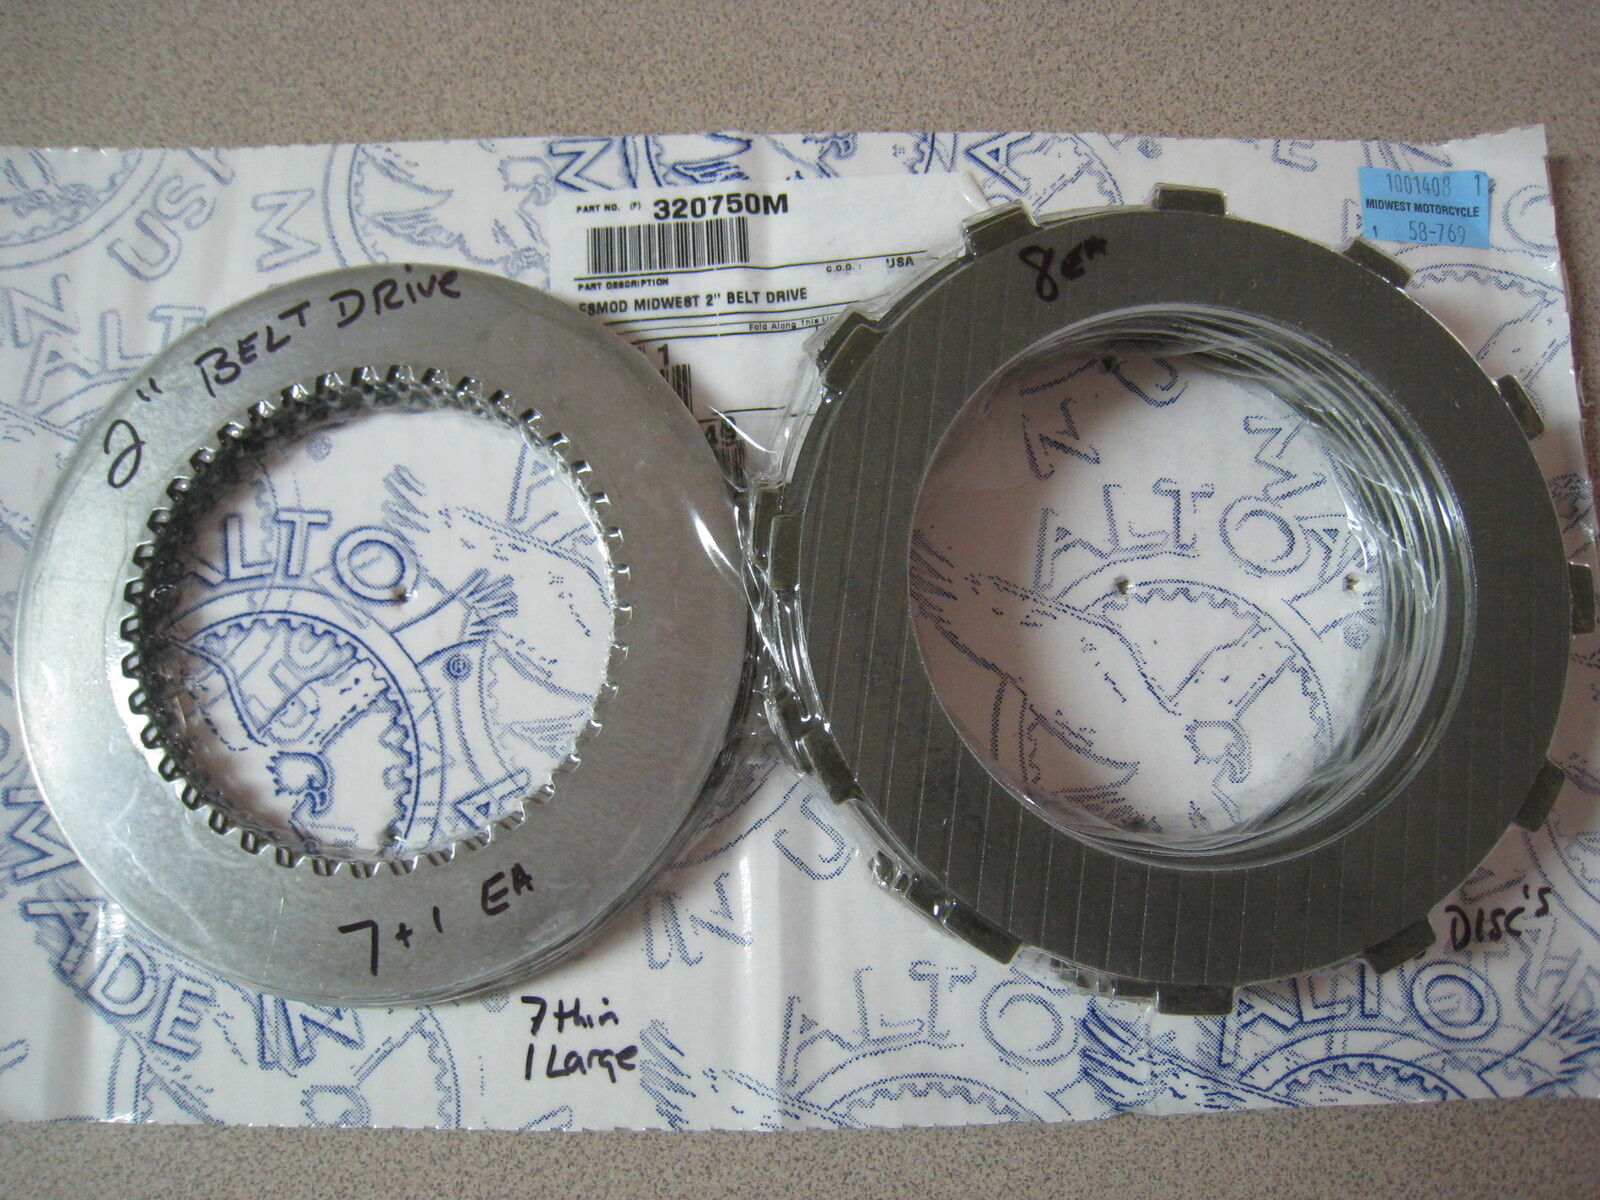 Ultima Primary Belt Drive 2 Clutch Pack Usa Made Alto 58-769